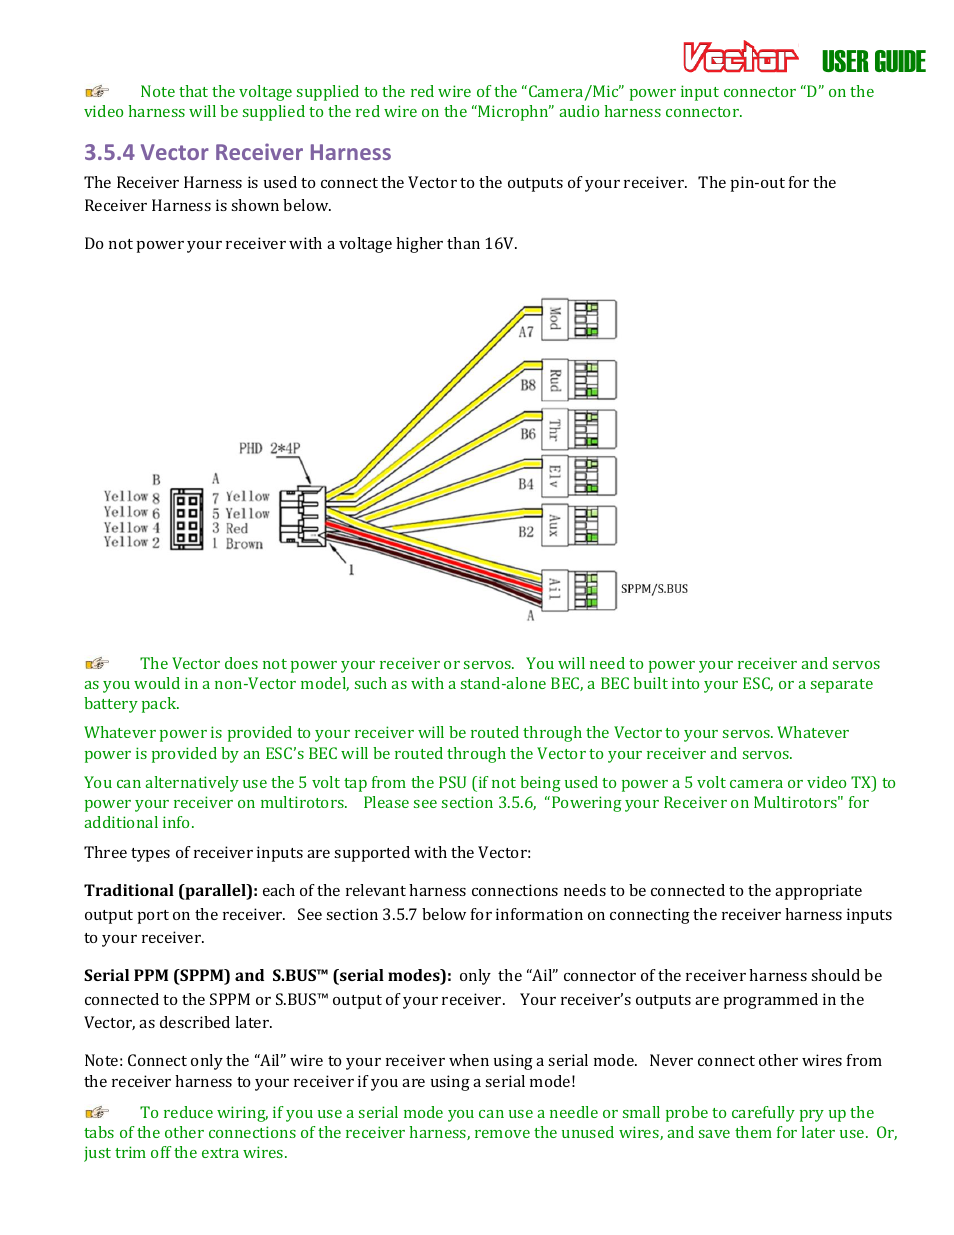 User guide, 4 vector receiver harness | Eagle Tree Vector User Manual |  Page 19